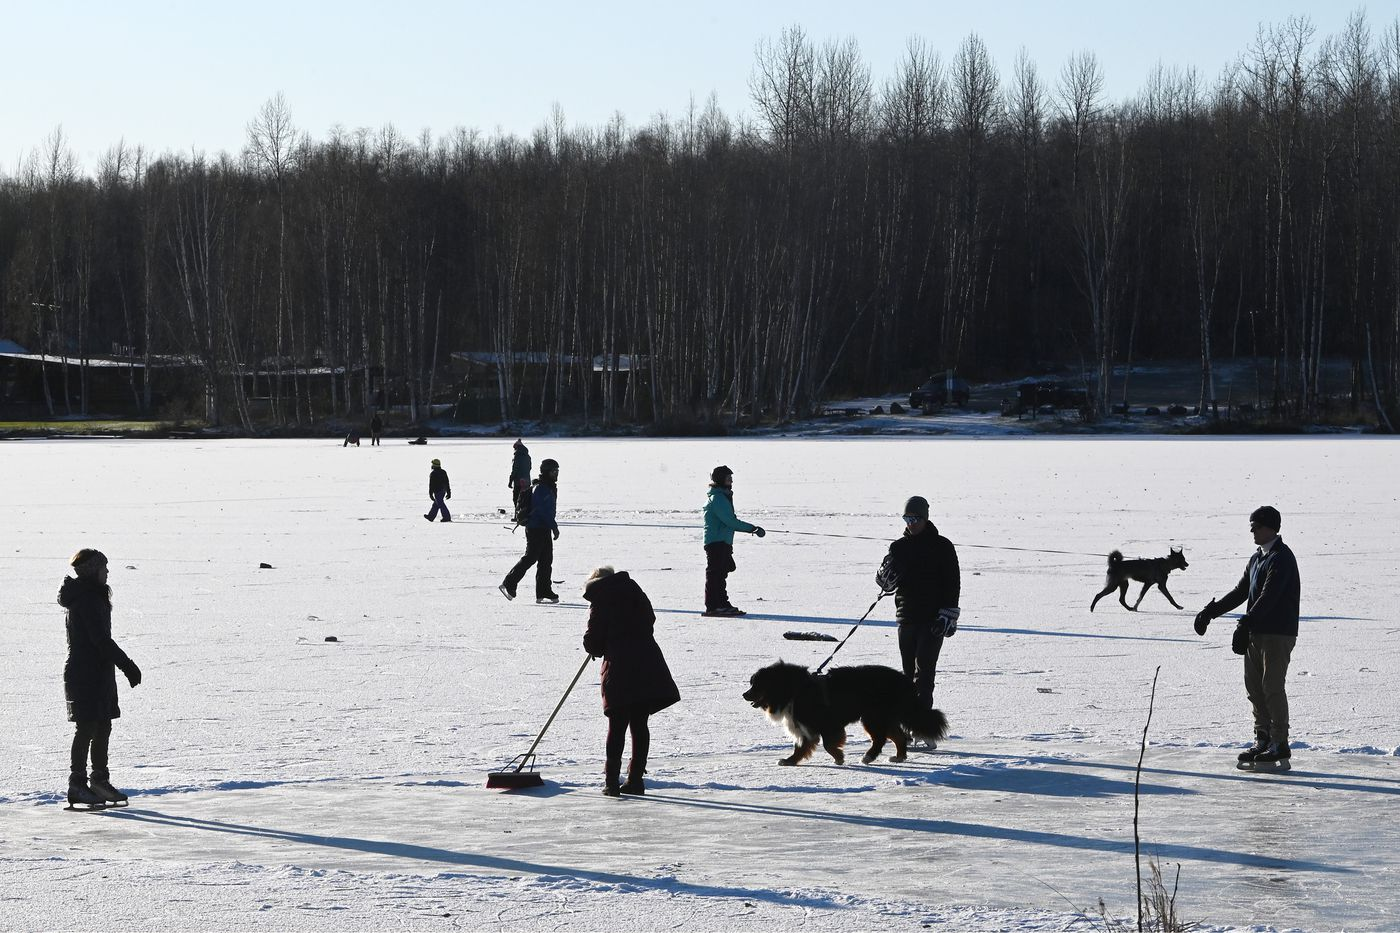 People took advantage of the cold weather and sunshine to ice skate at Mirror Lake on Sunday, Nov. 1, 2020. (Bill Roth / ADN)